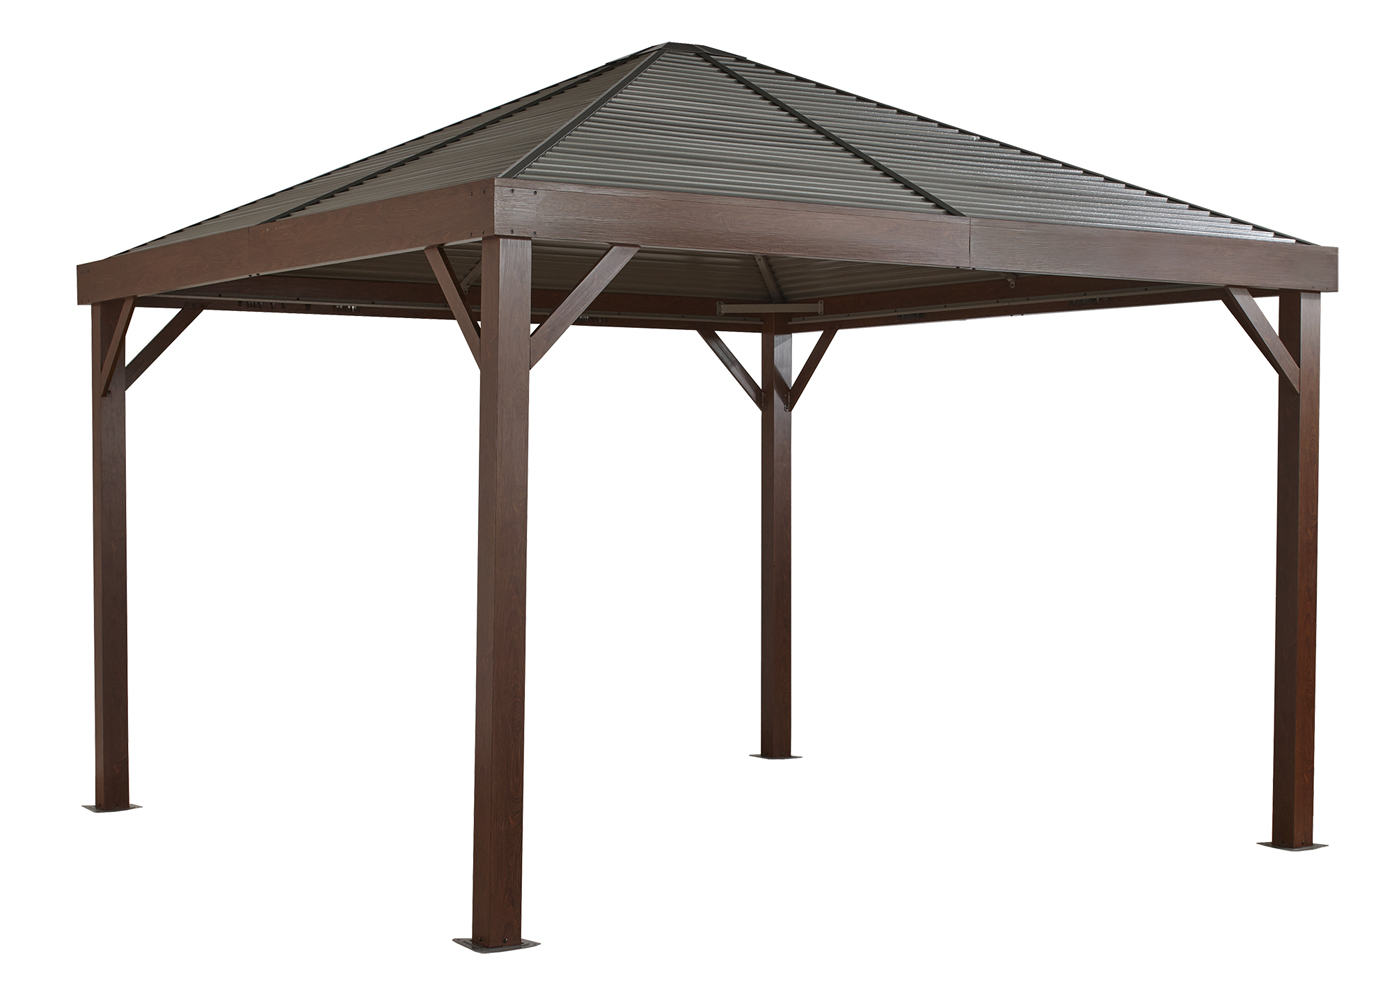 Gazebo Wood Finish 12 x 12 ft.